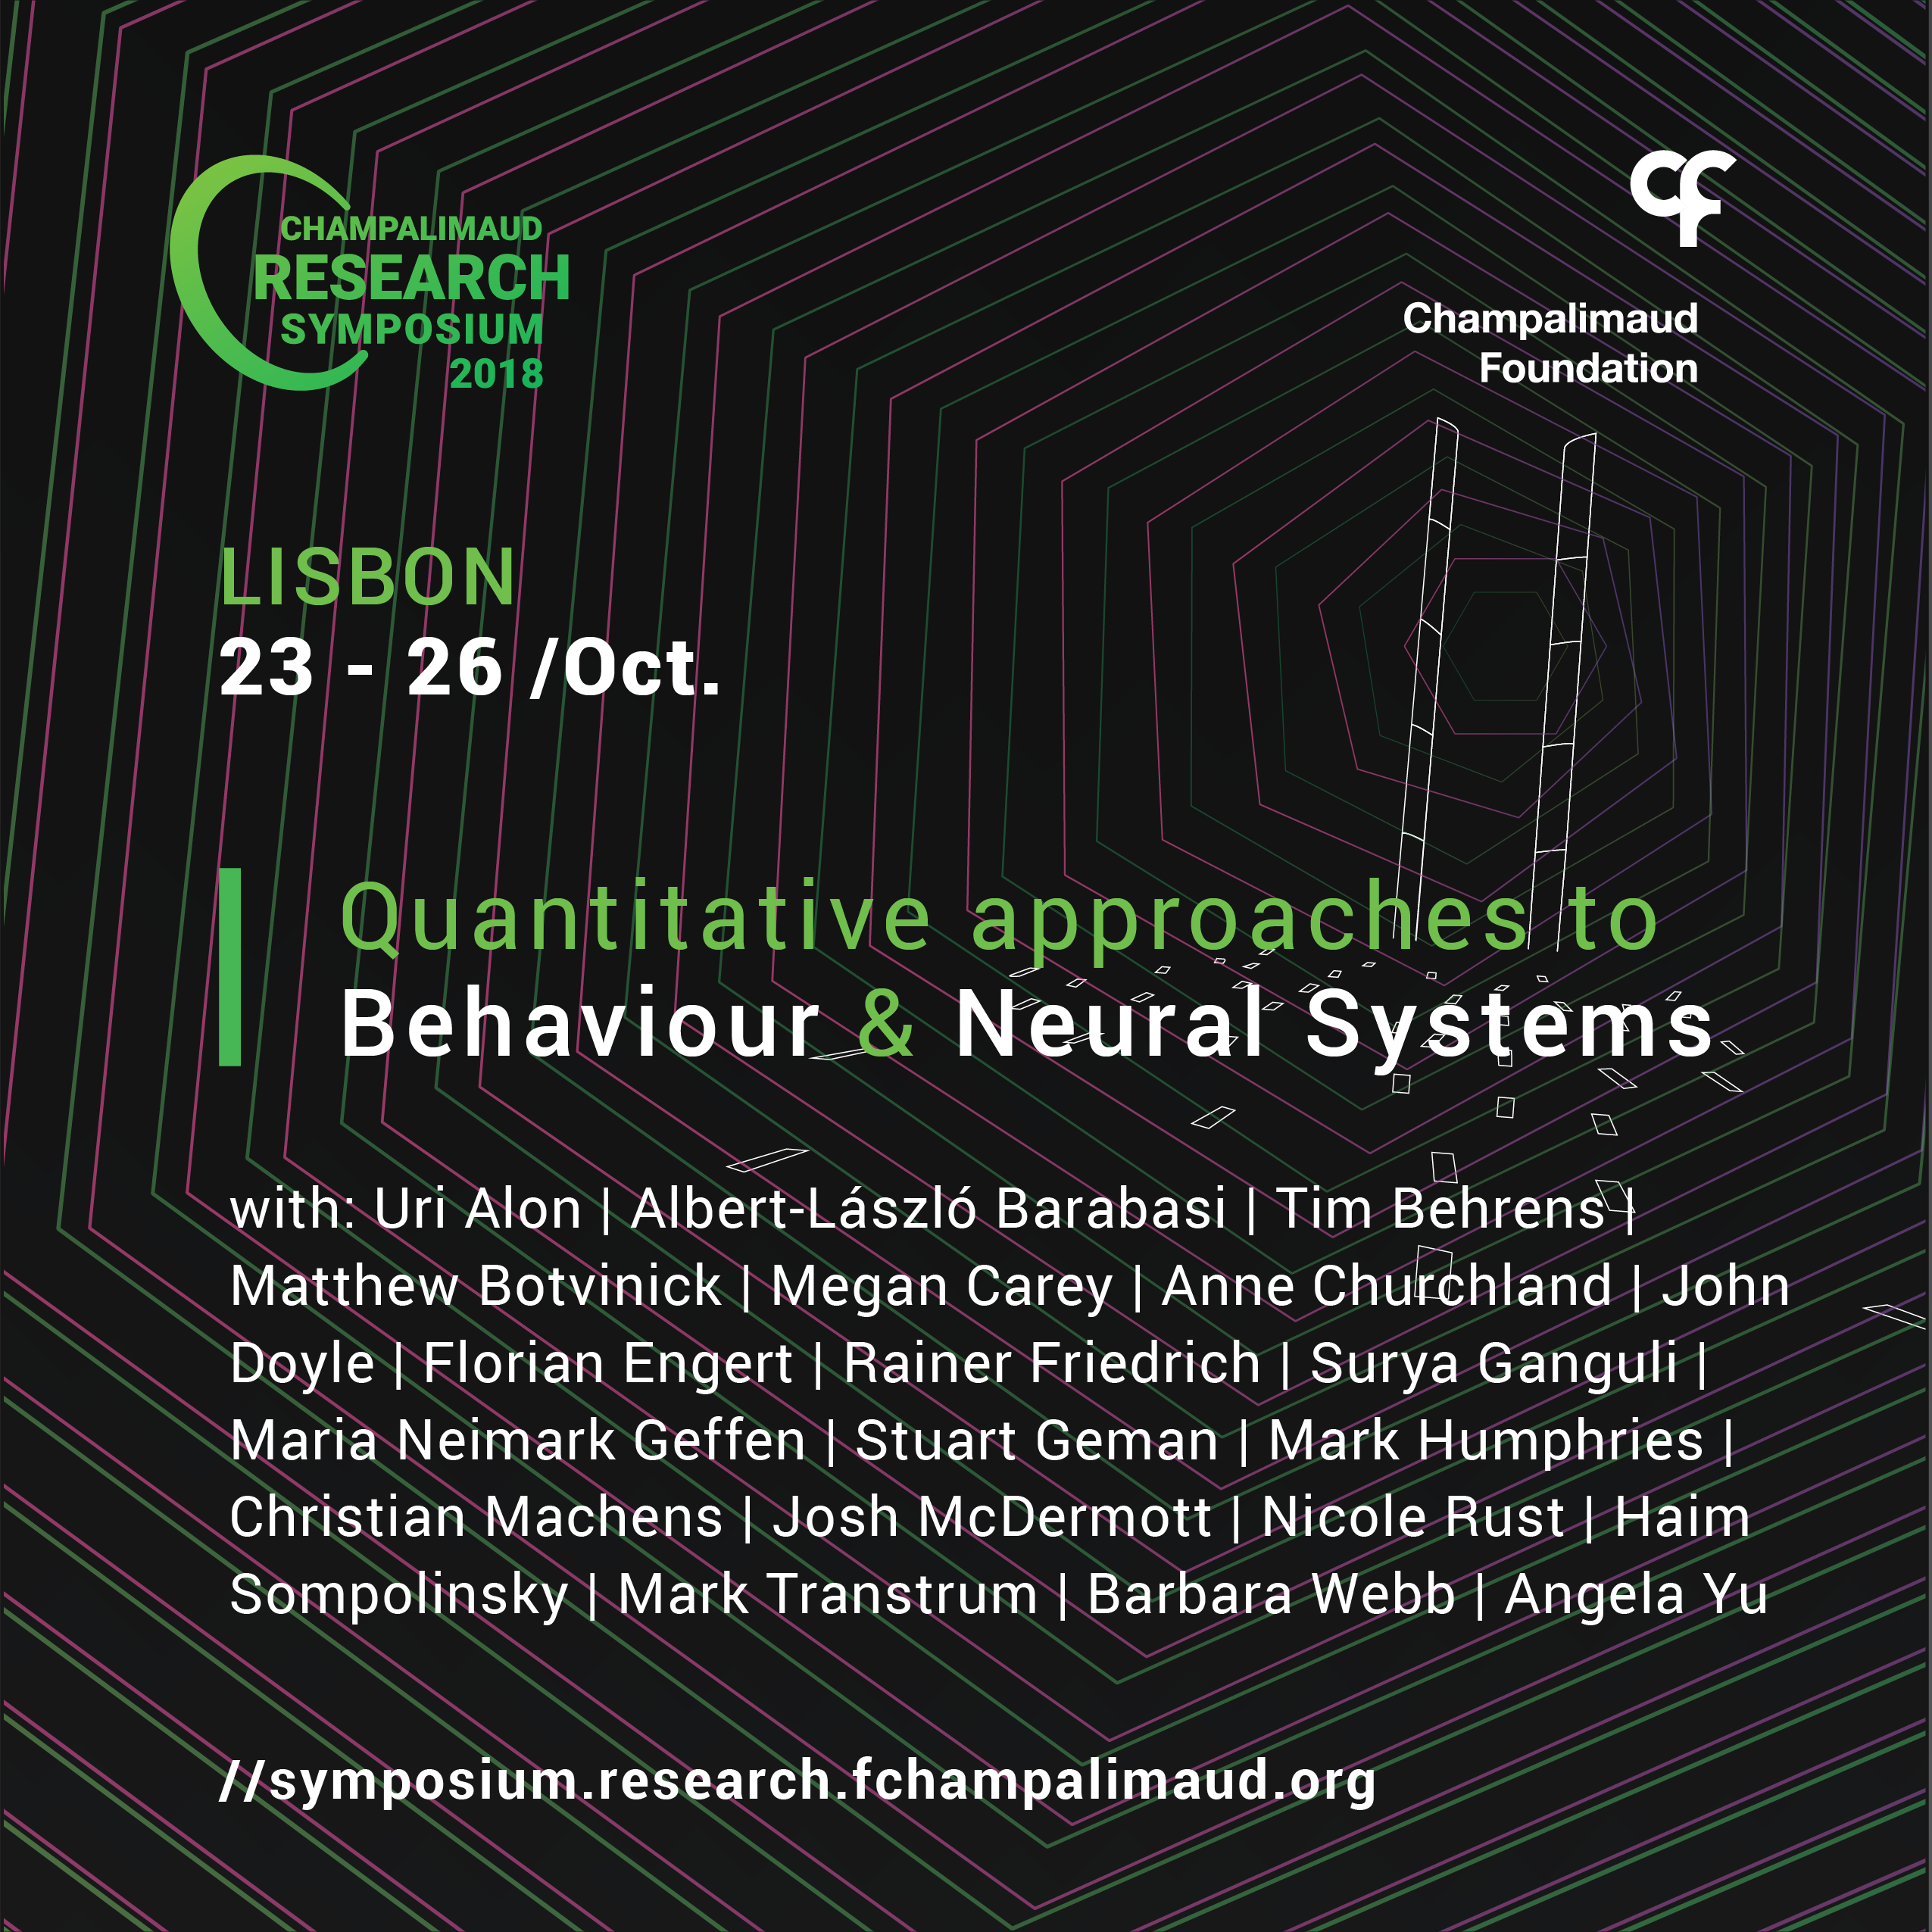 Champalimaud Research Symposium 2018